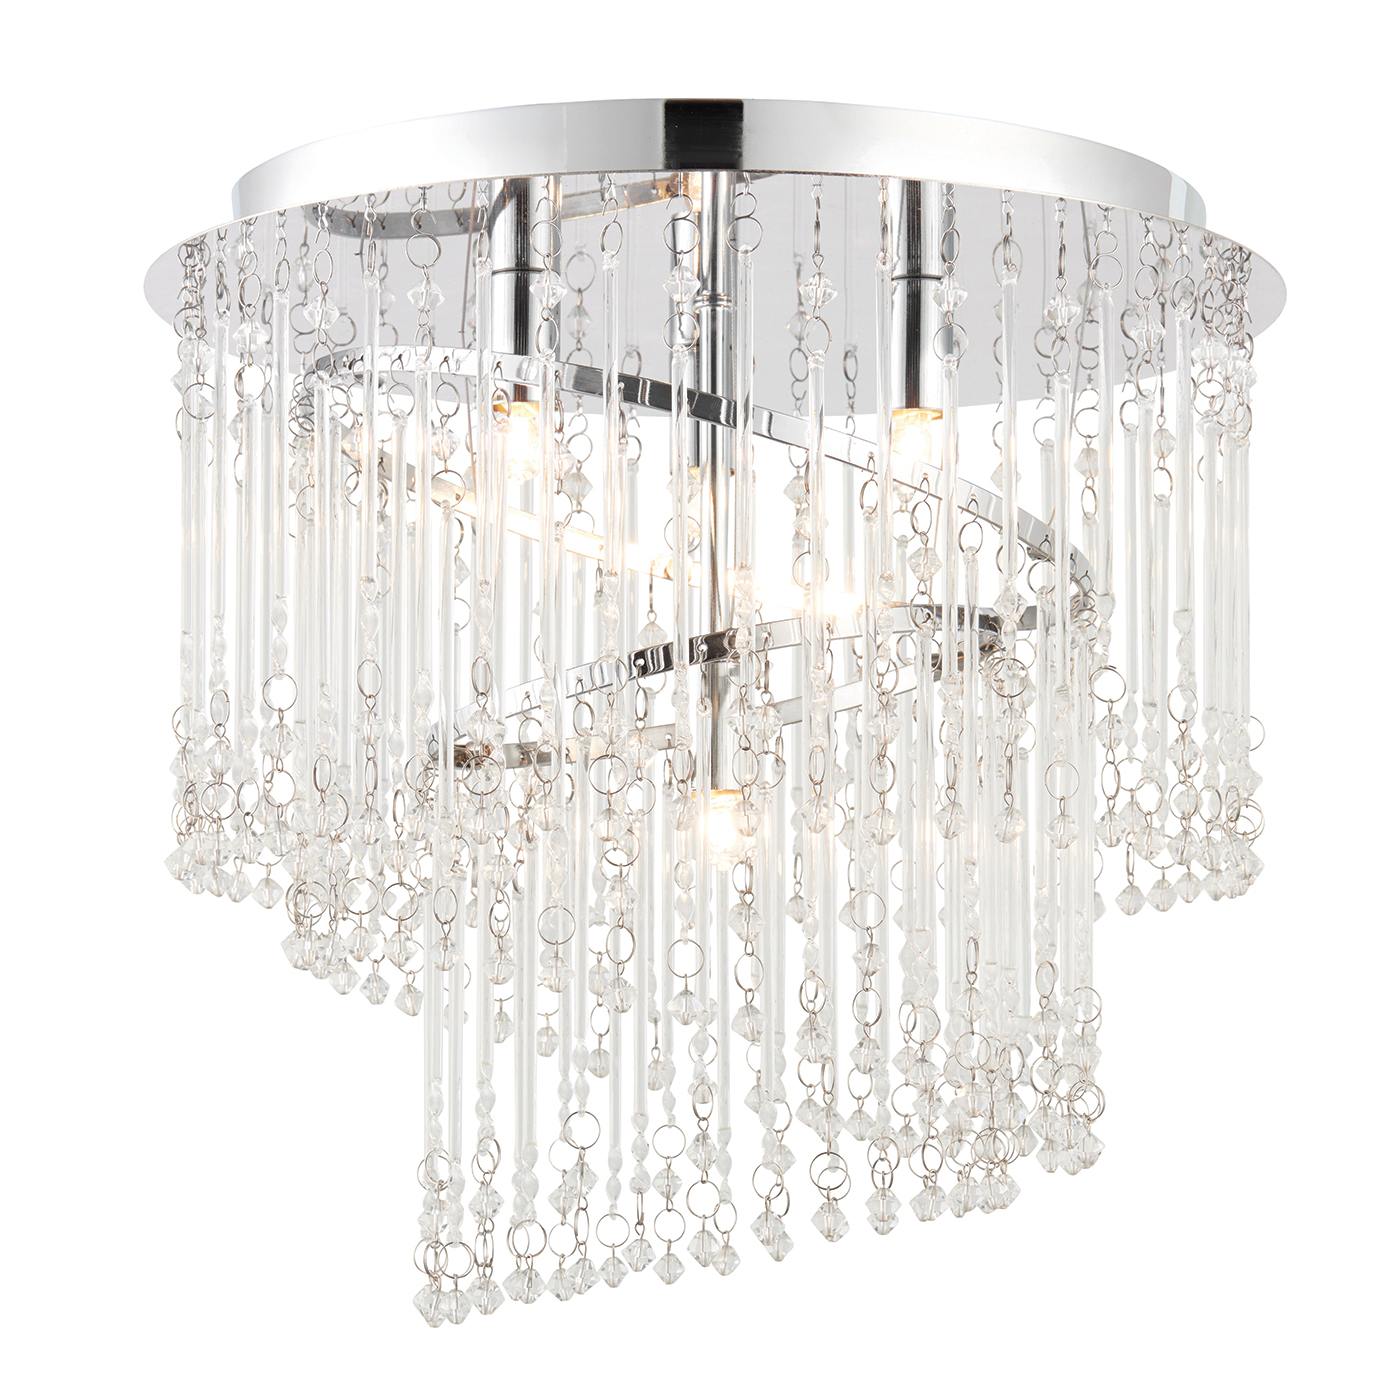 Endon Camille flush ceiling light 4x 28W Clear glass & chrome effect plate